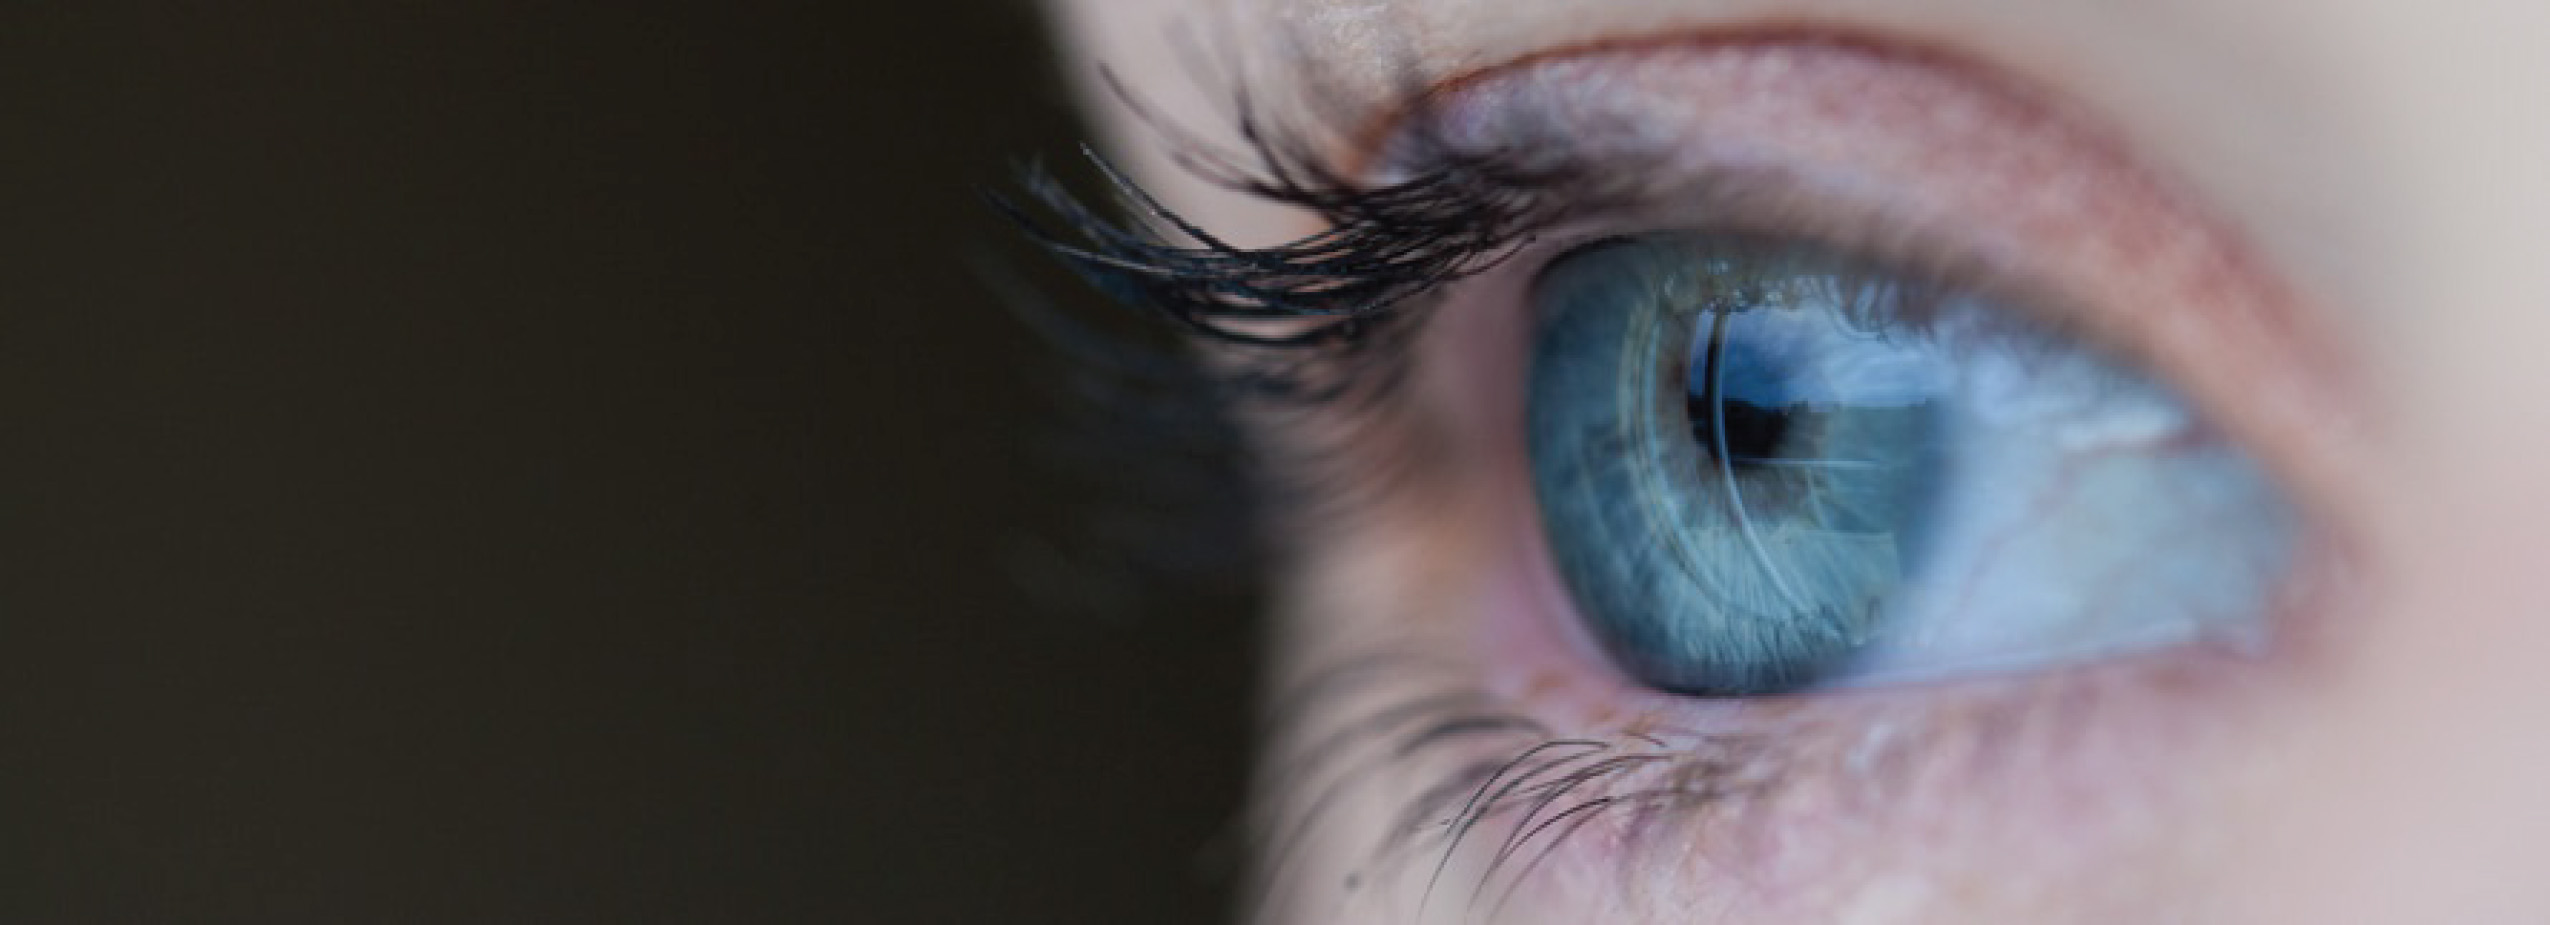 Close=up of a person's blue eye. Illustration of Top Security Threats. topImg1